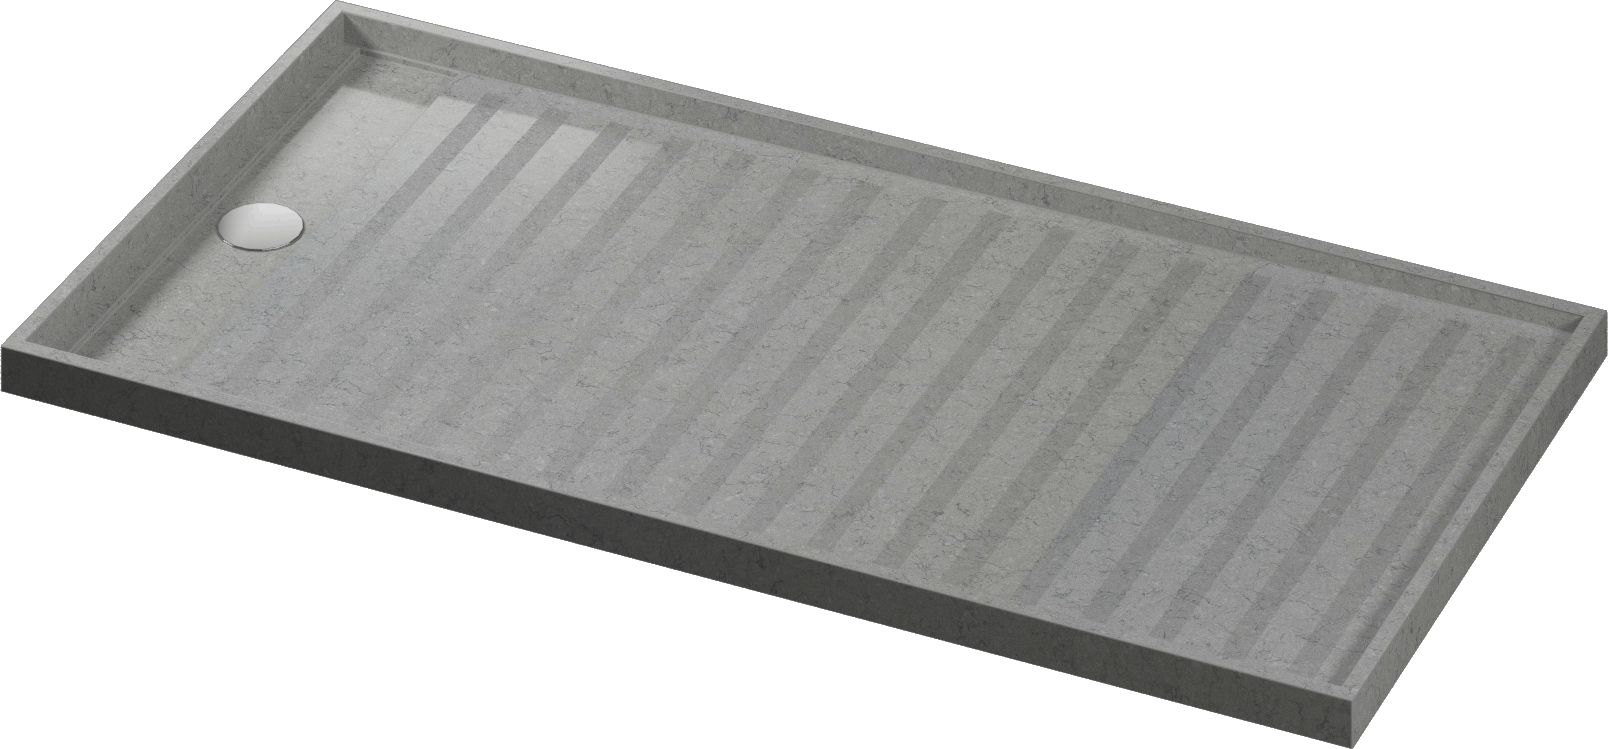 Drain Trays For Kitchen Sinks